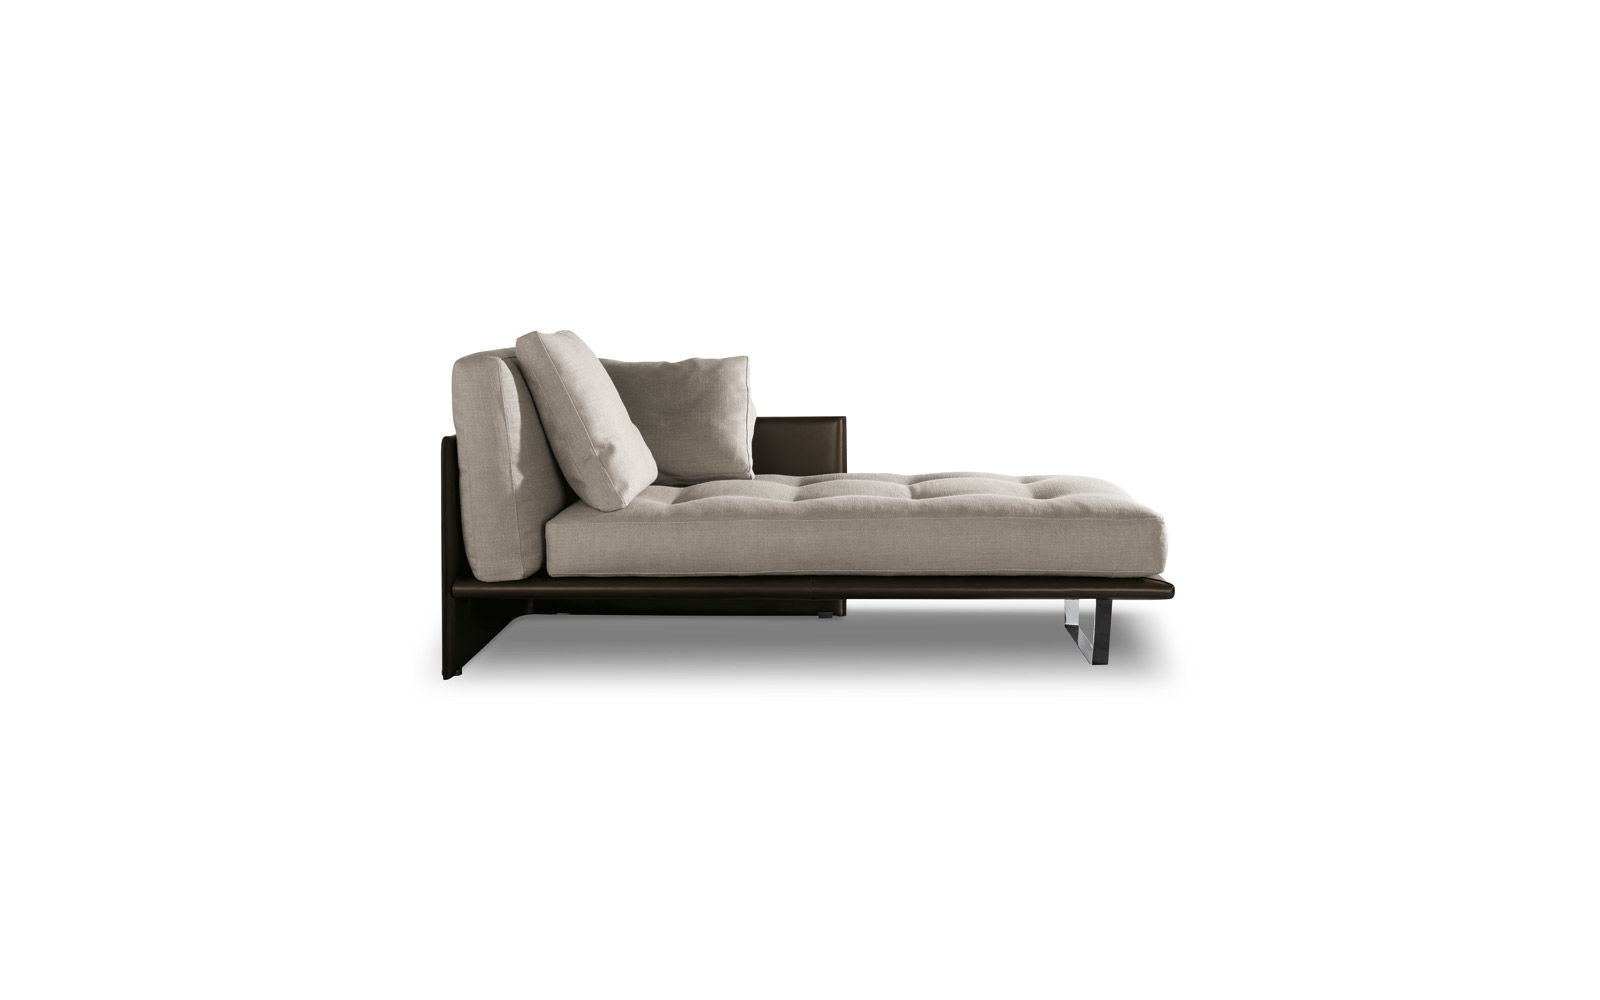 Luggage chaise longue for Chaise longue carrefour